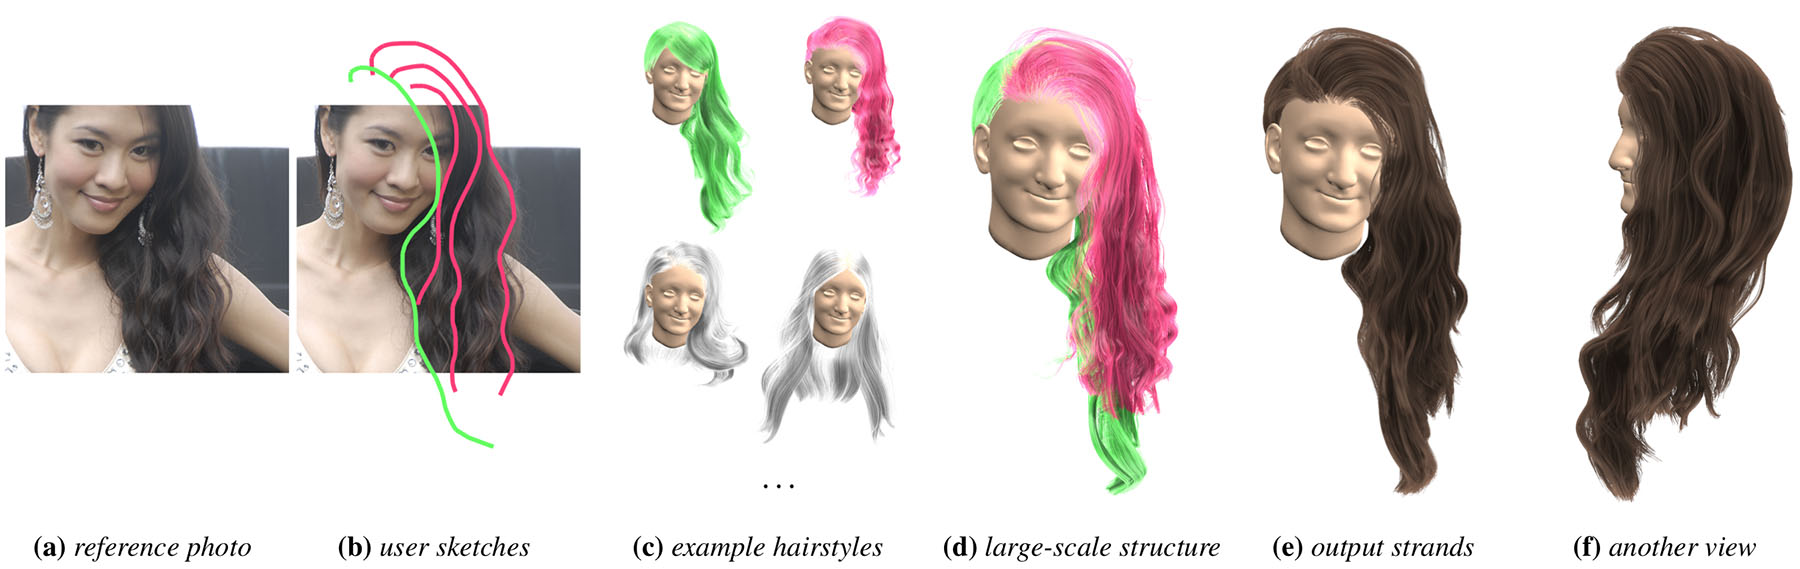 Single-View Hair Modeling Using A Hairstyle Database | Linjie Luo